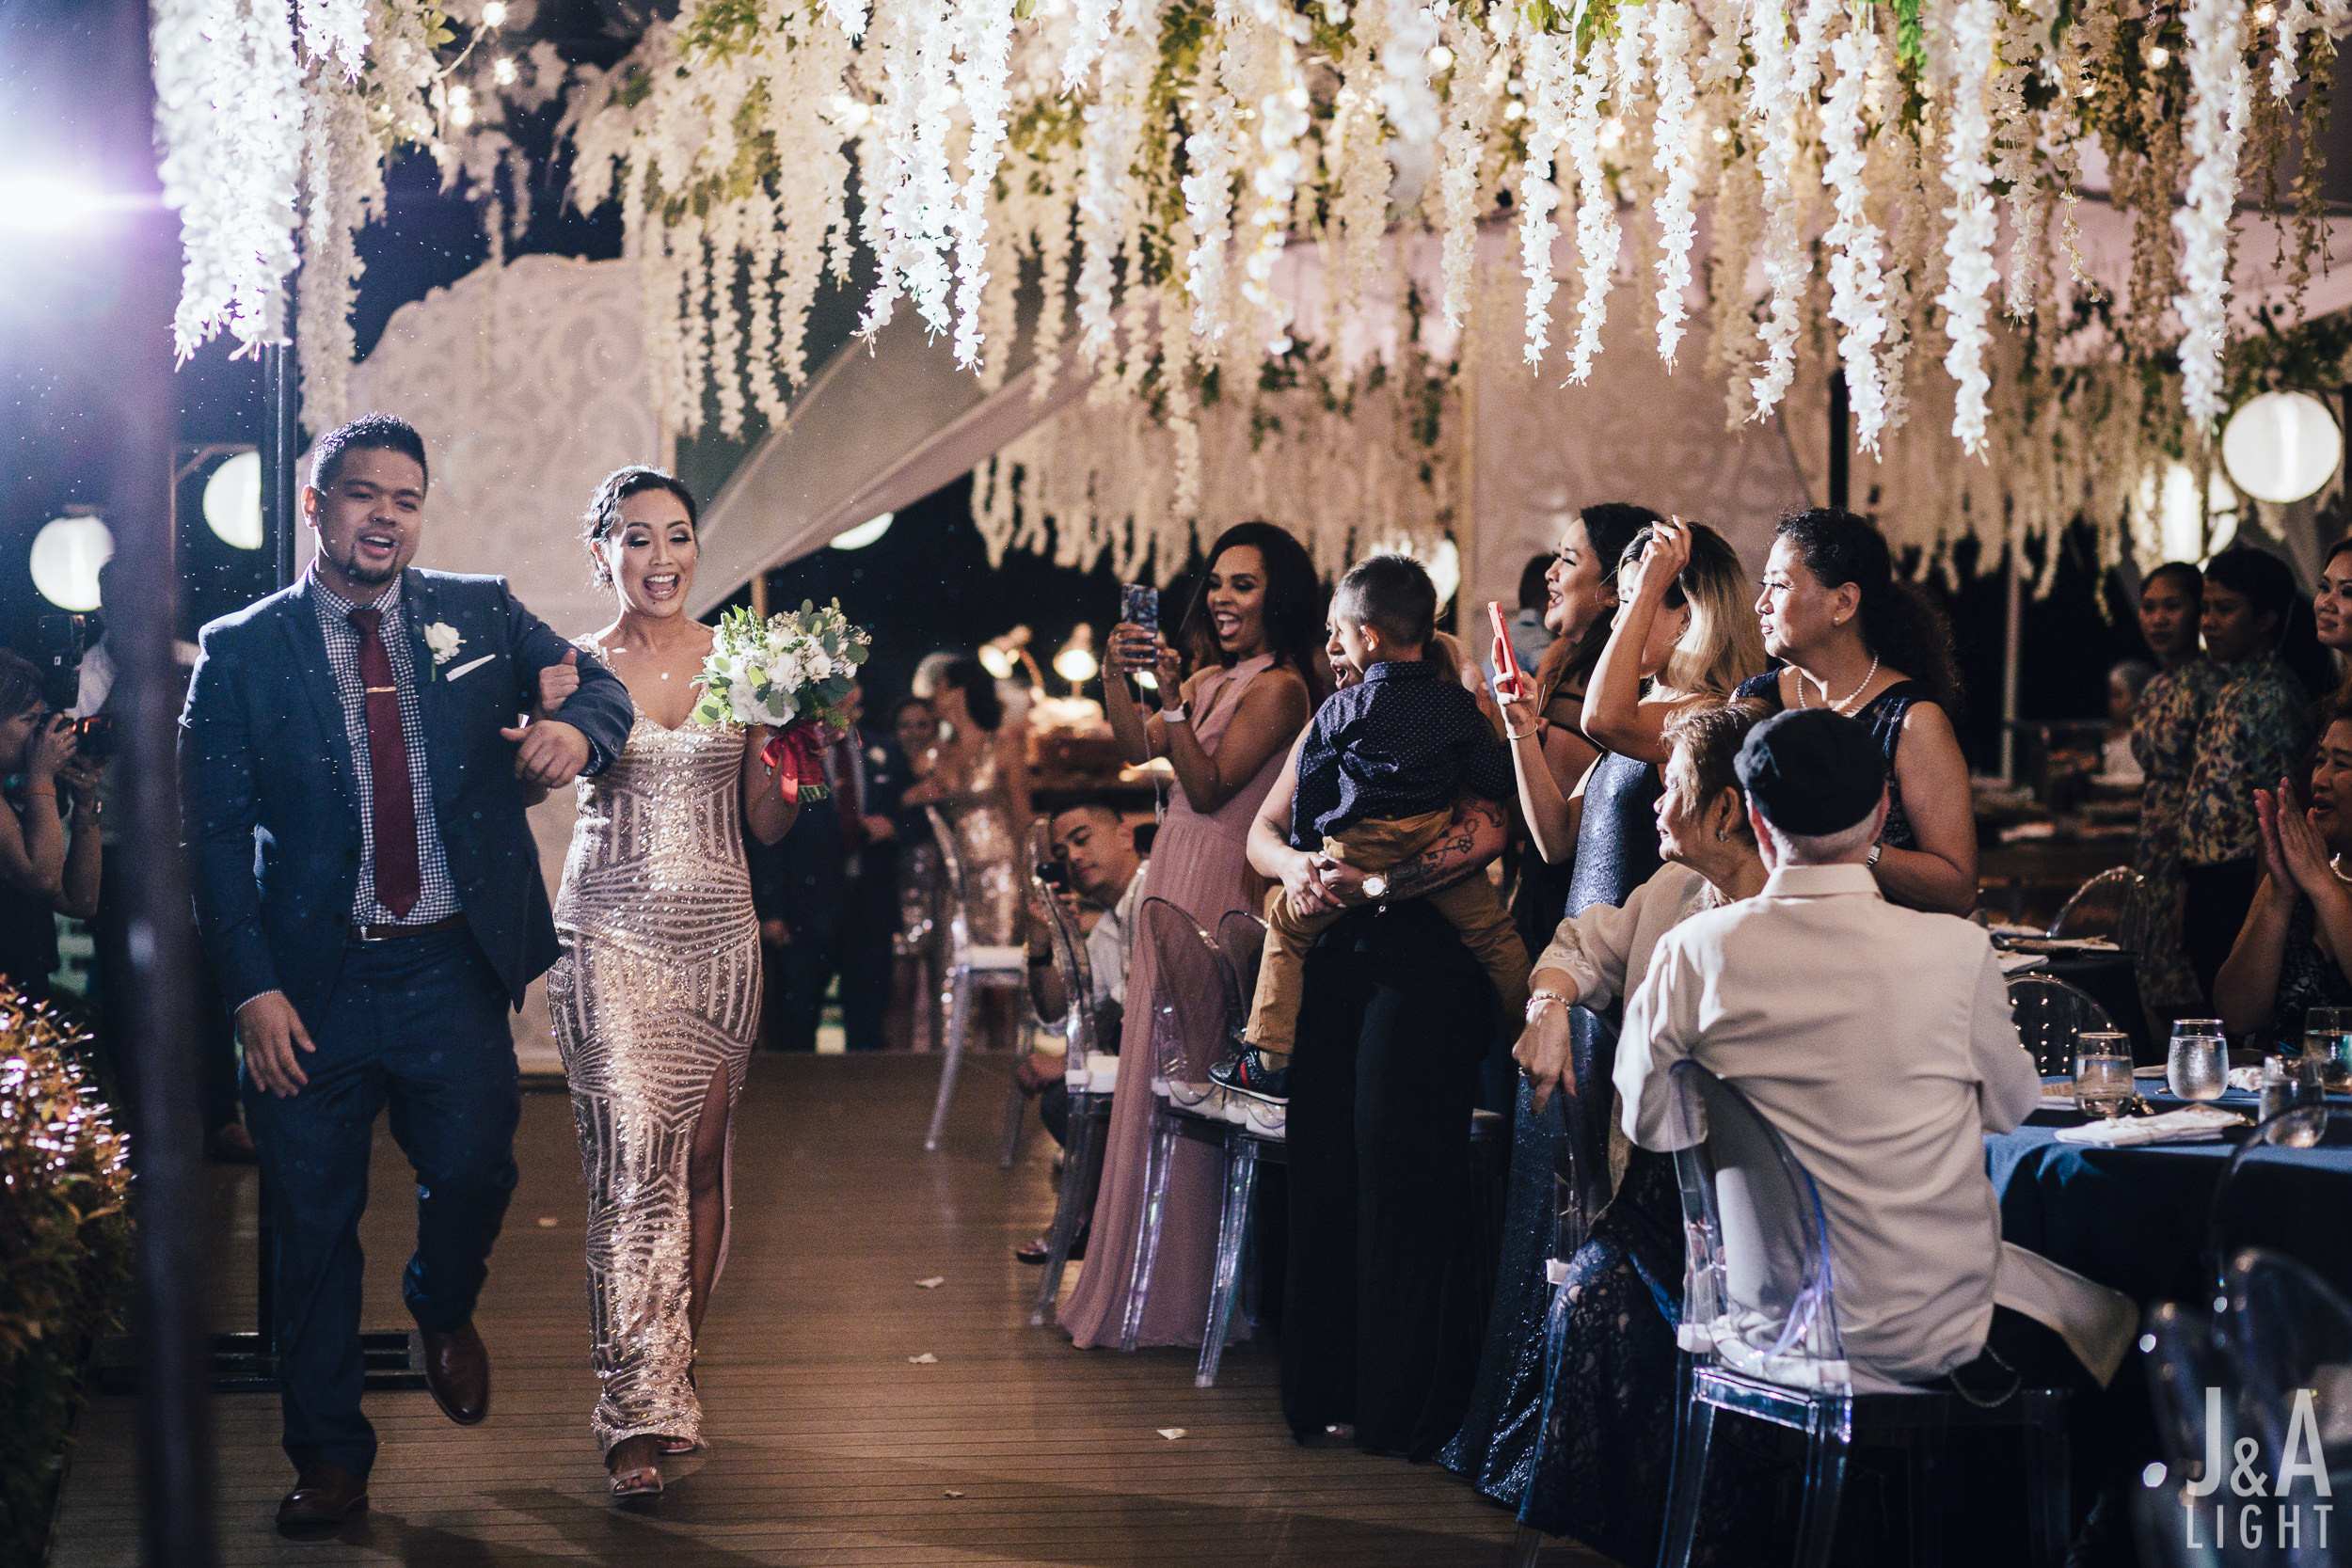 20170112-MarJow-TheLindBoracayPhillippinesInternationalWedding-093.jpg